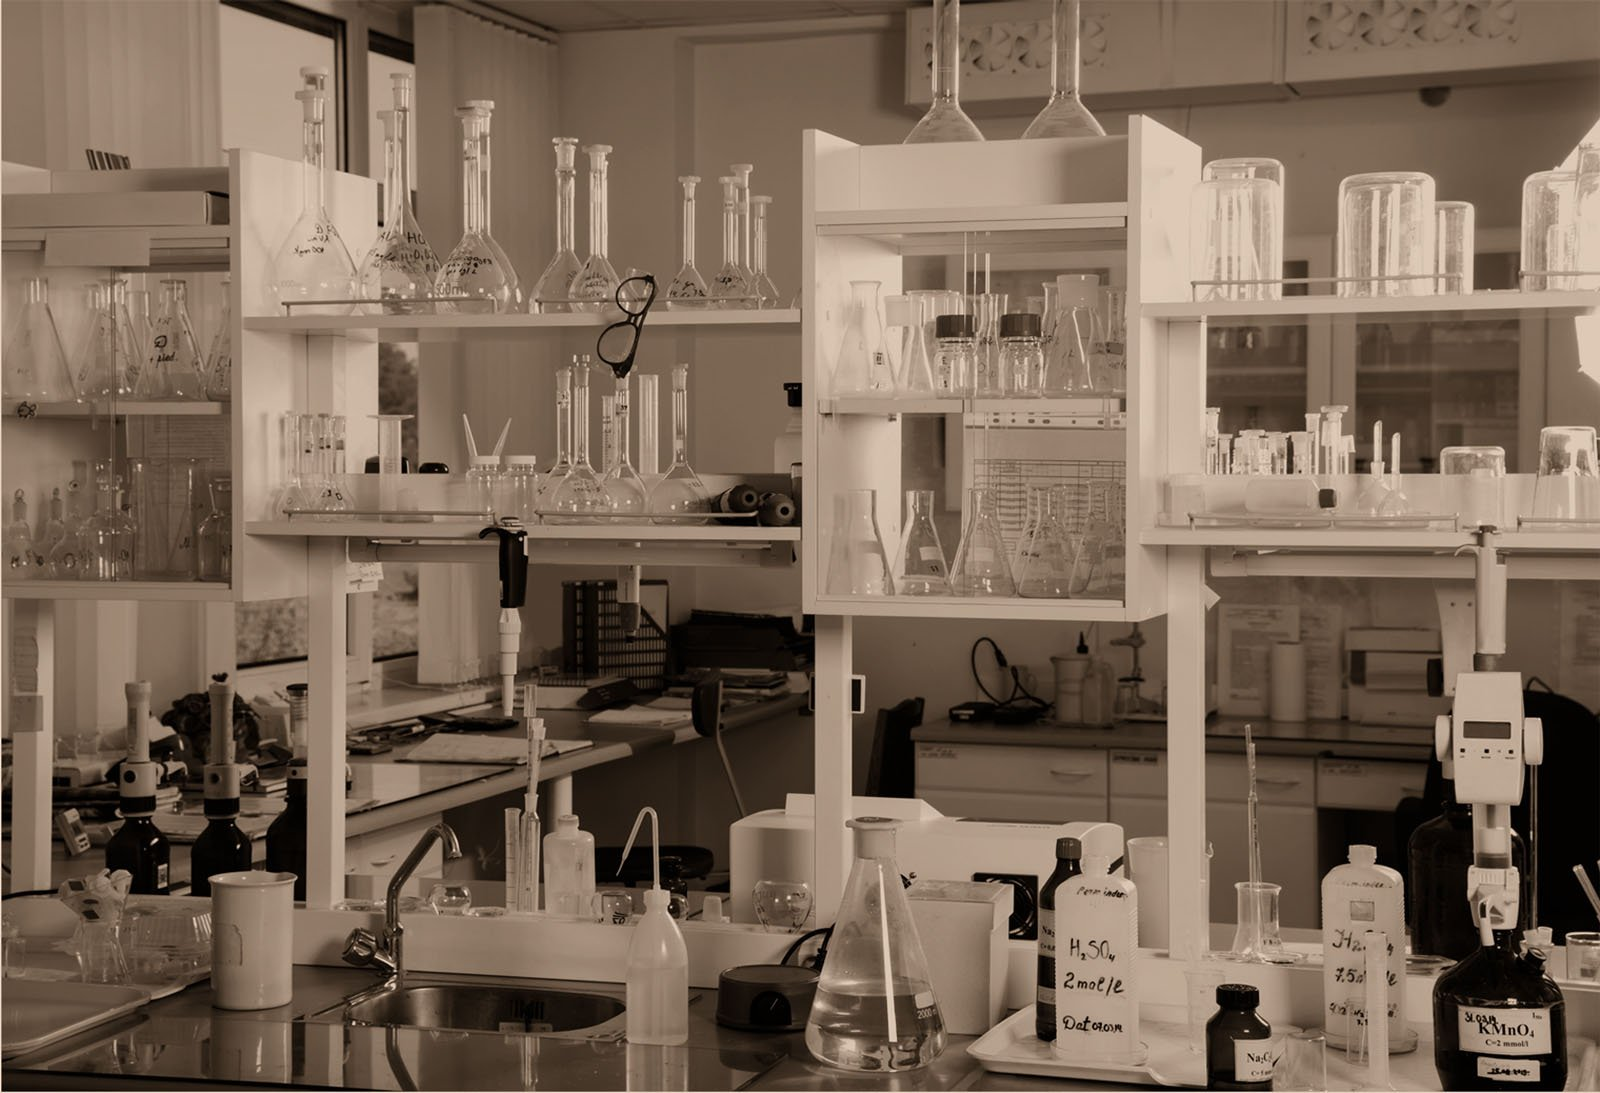 4-Questions-Manufacturers-Should-Ask-Their-Chemical-Suppliers.jpg